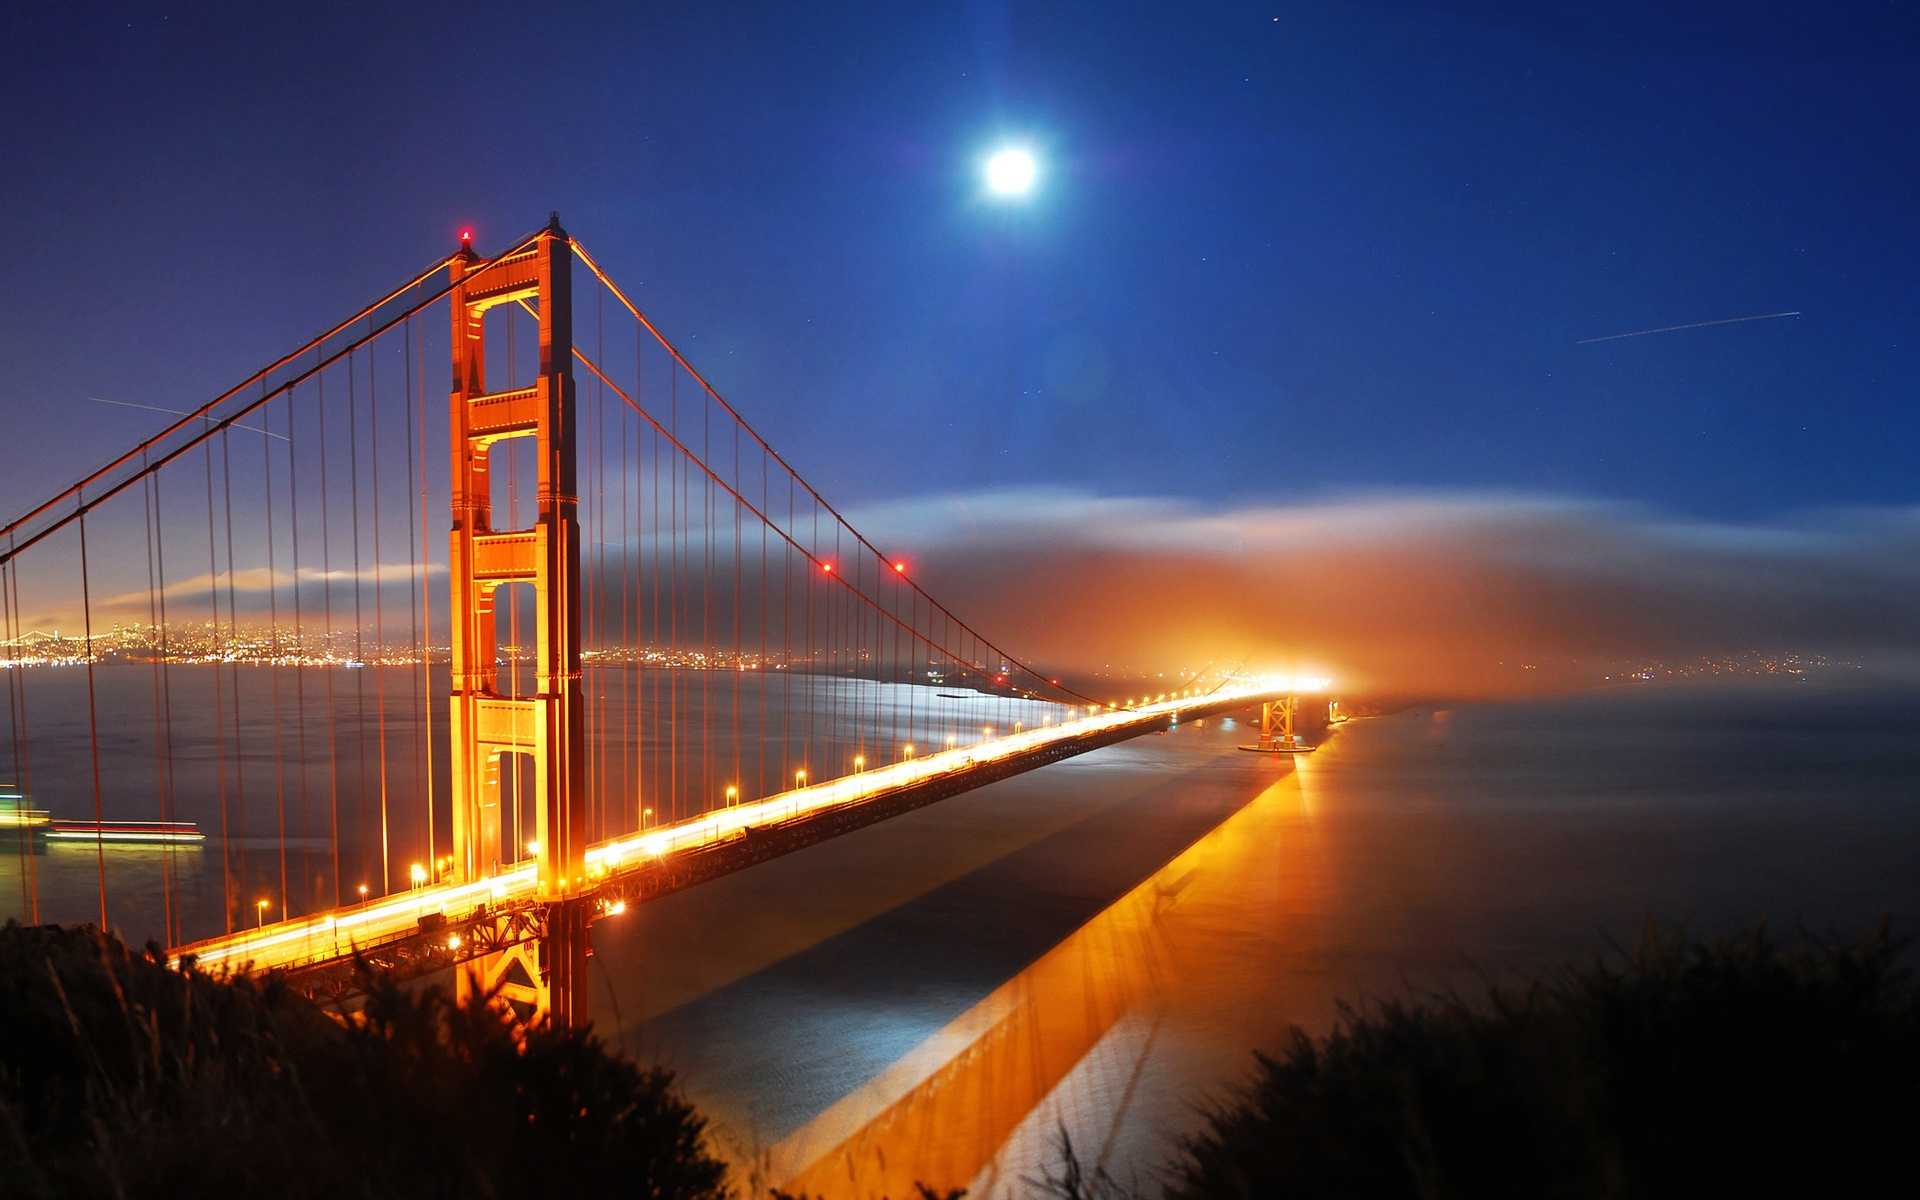 San Francisco Bridge Night Lights 3367.73 Kb